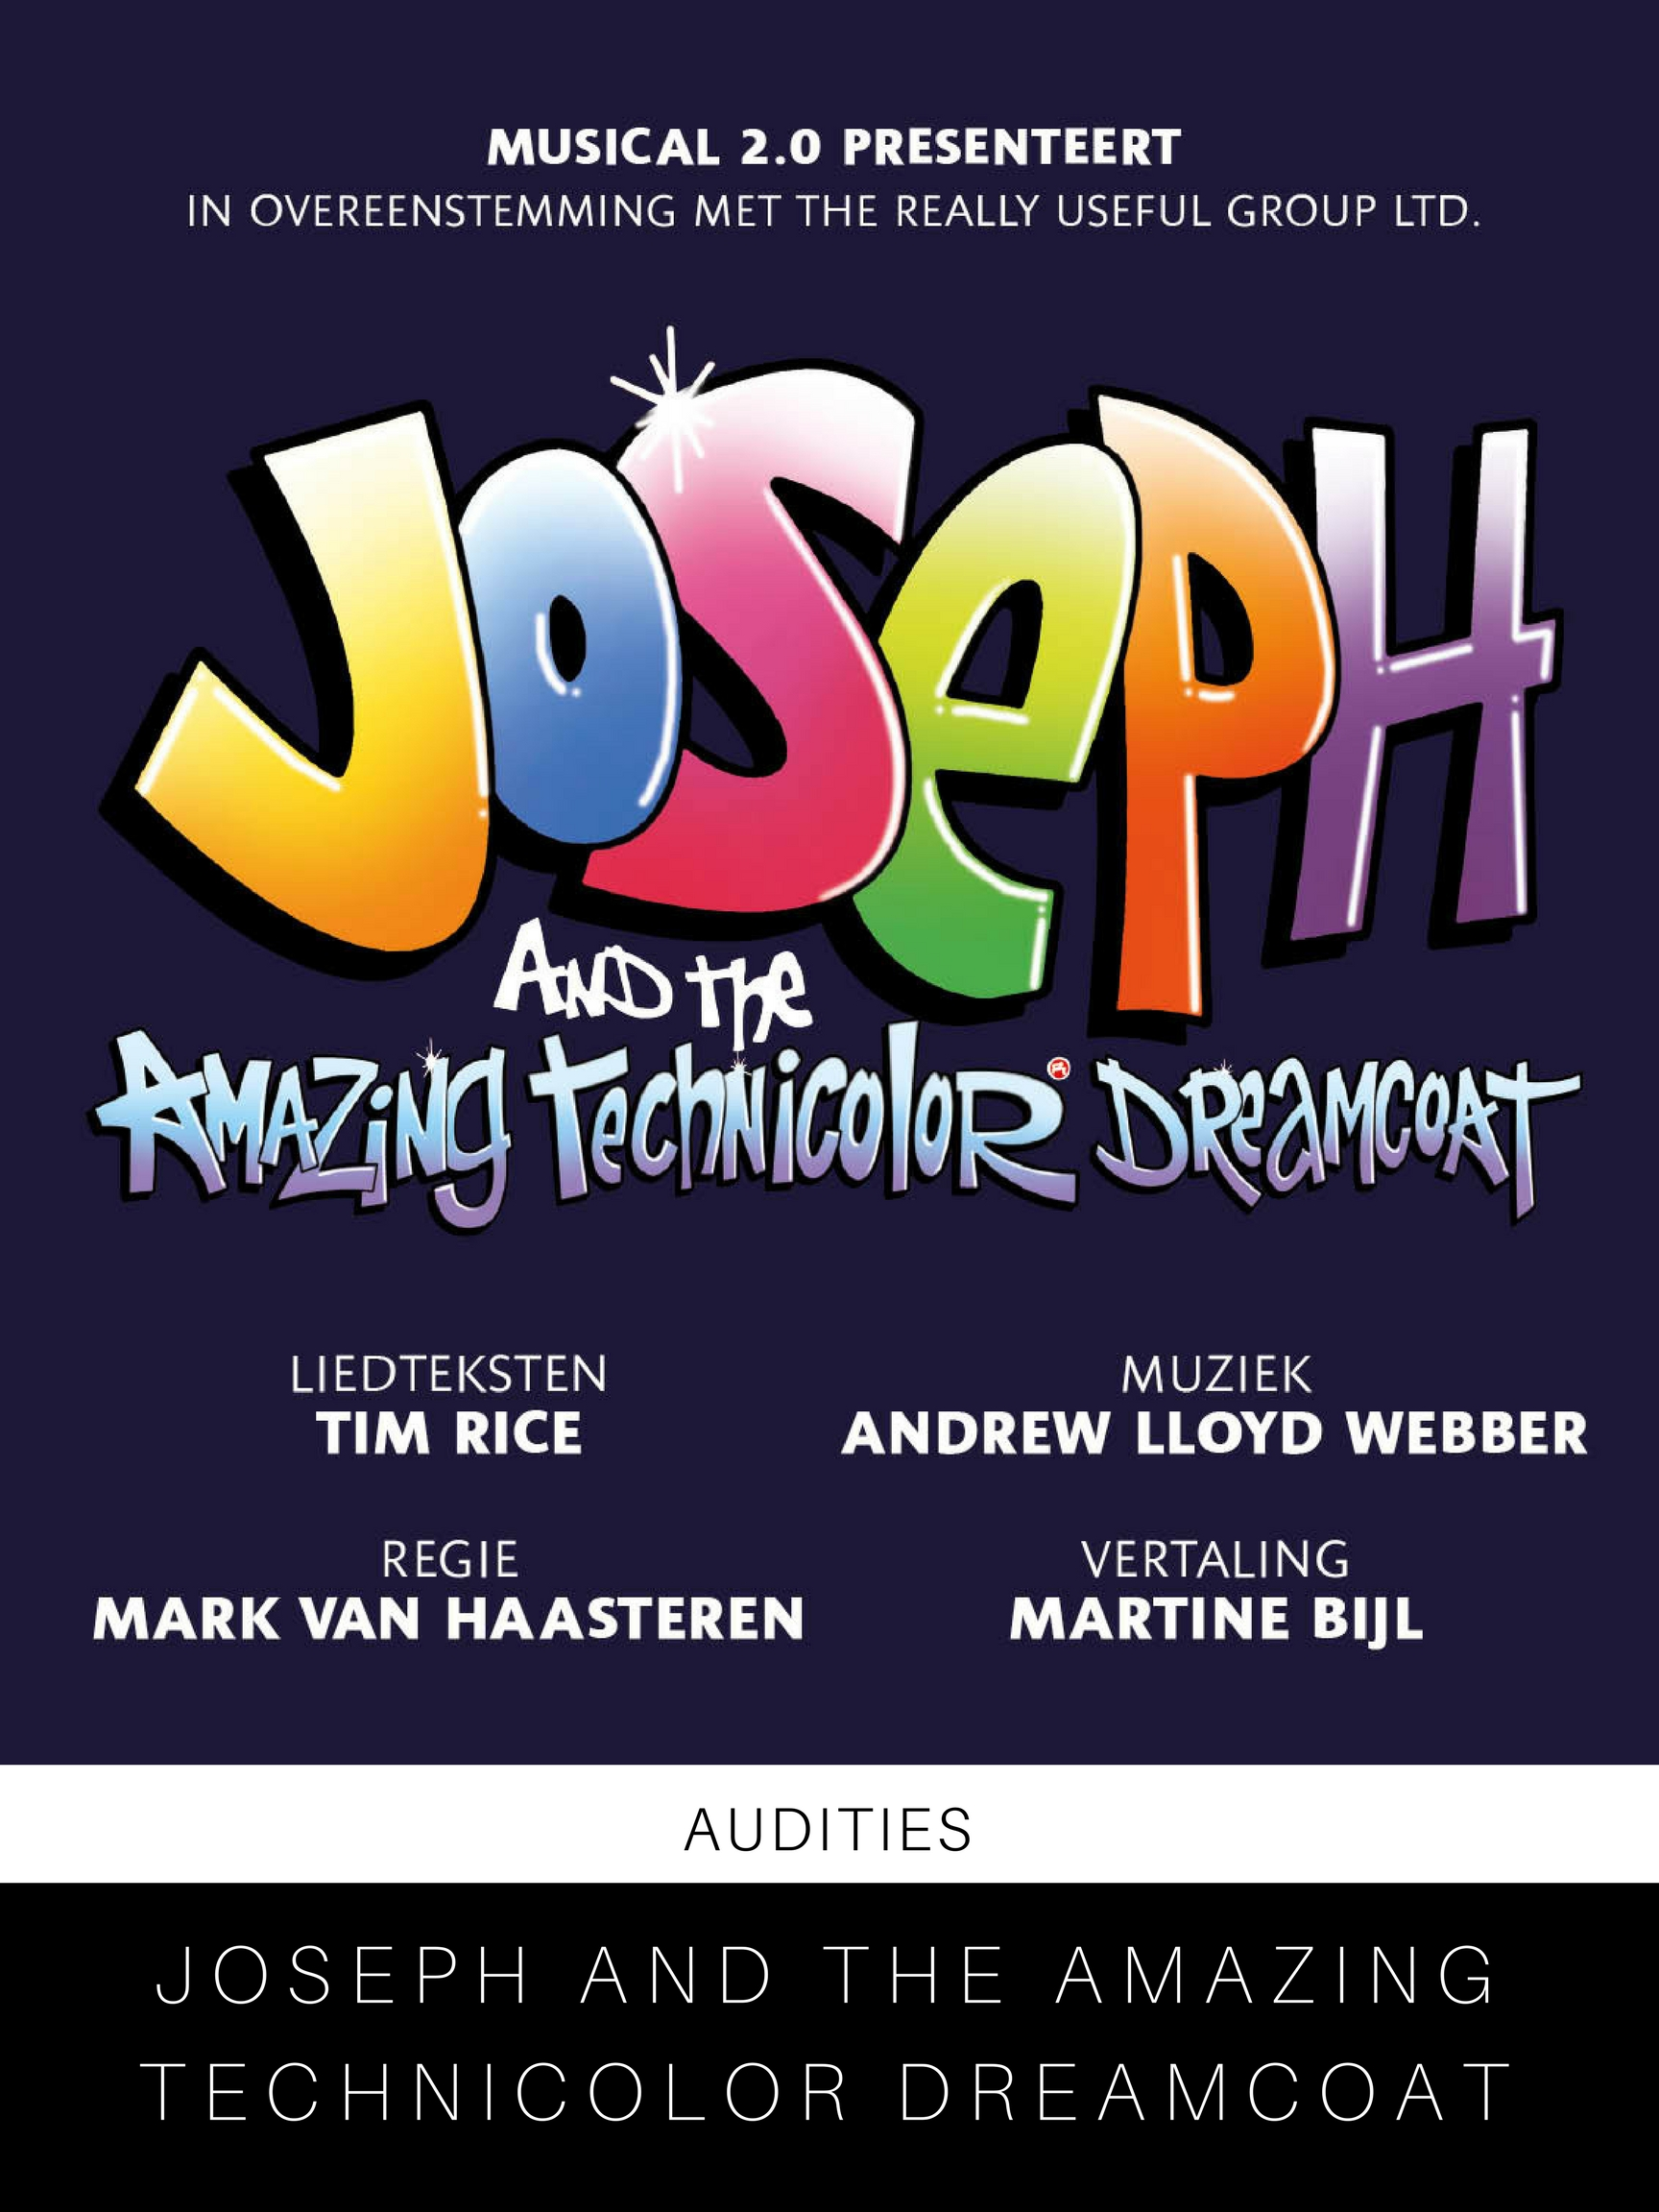 Audities - Joseph and the Amazing Technicolor Dreamcoat